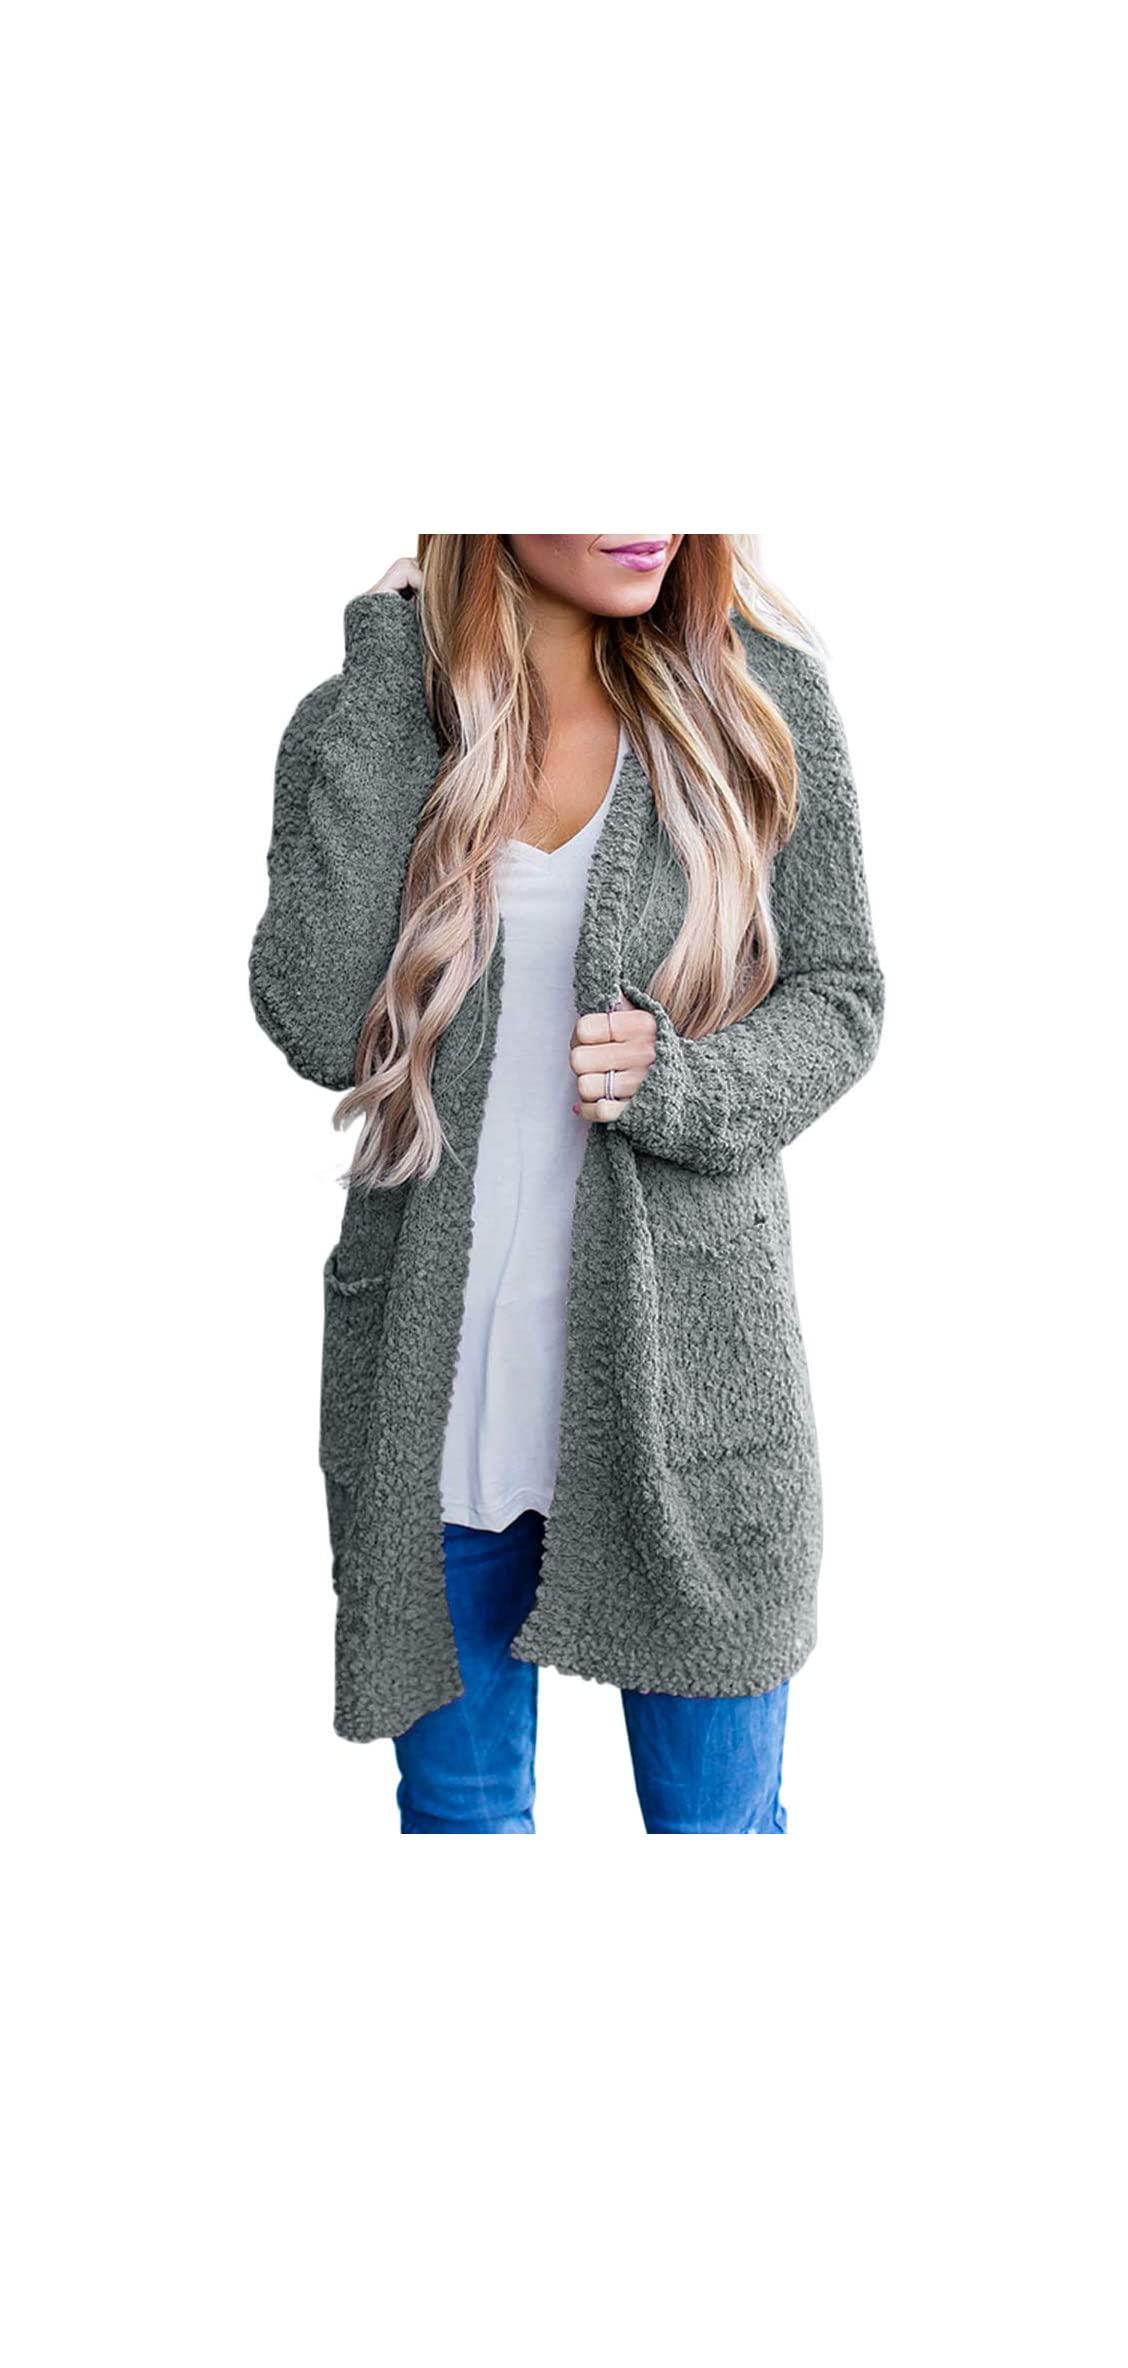 Women's Long Sleeve Soft Chunky Knit Sweater Open With